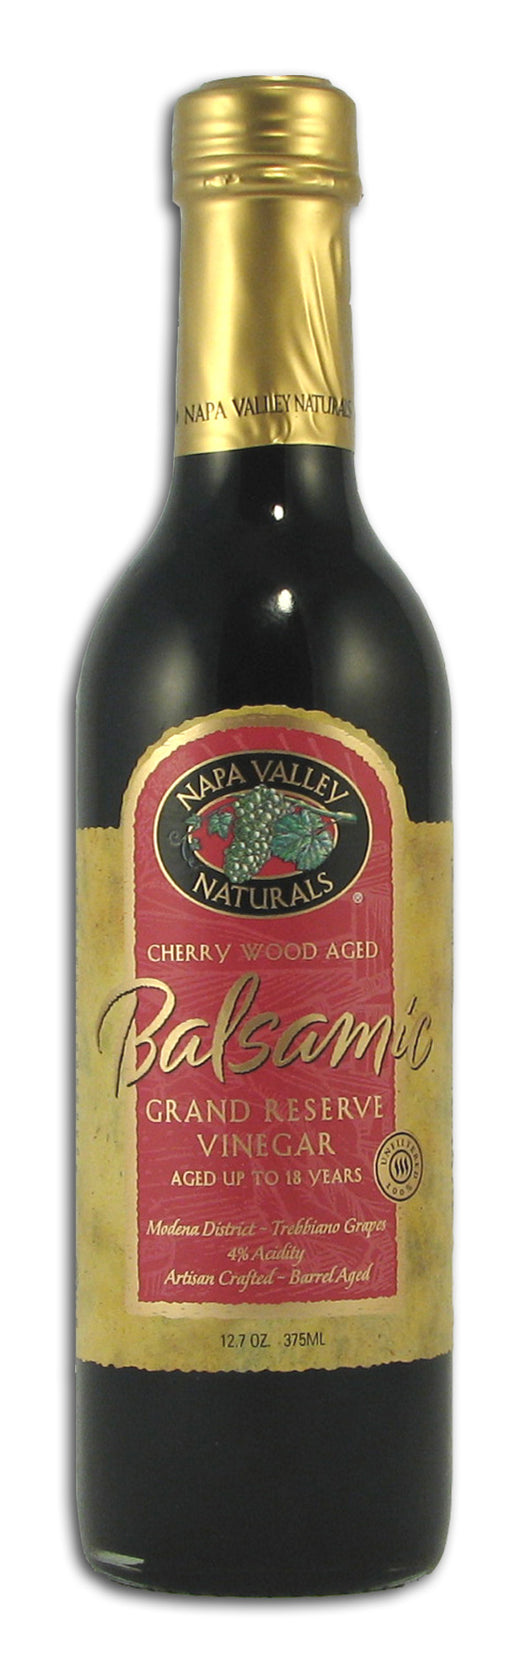 Balsamic Vinegar, Grand Reserve